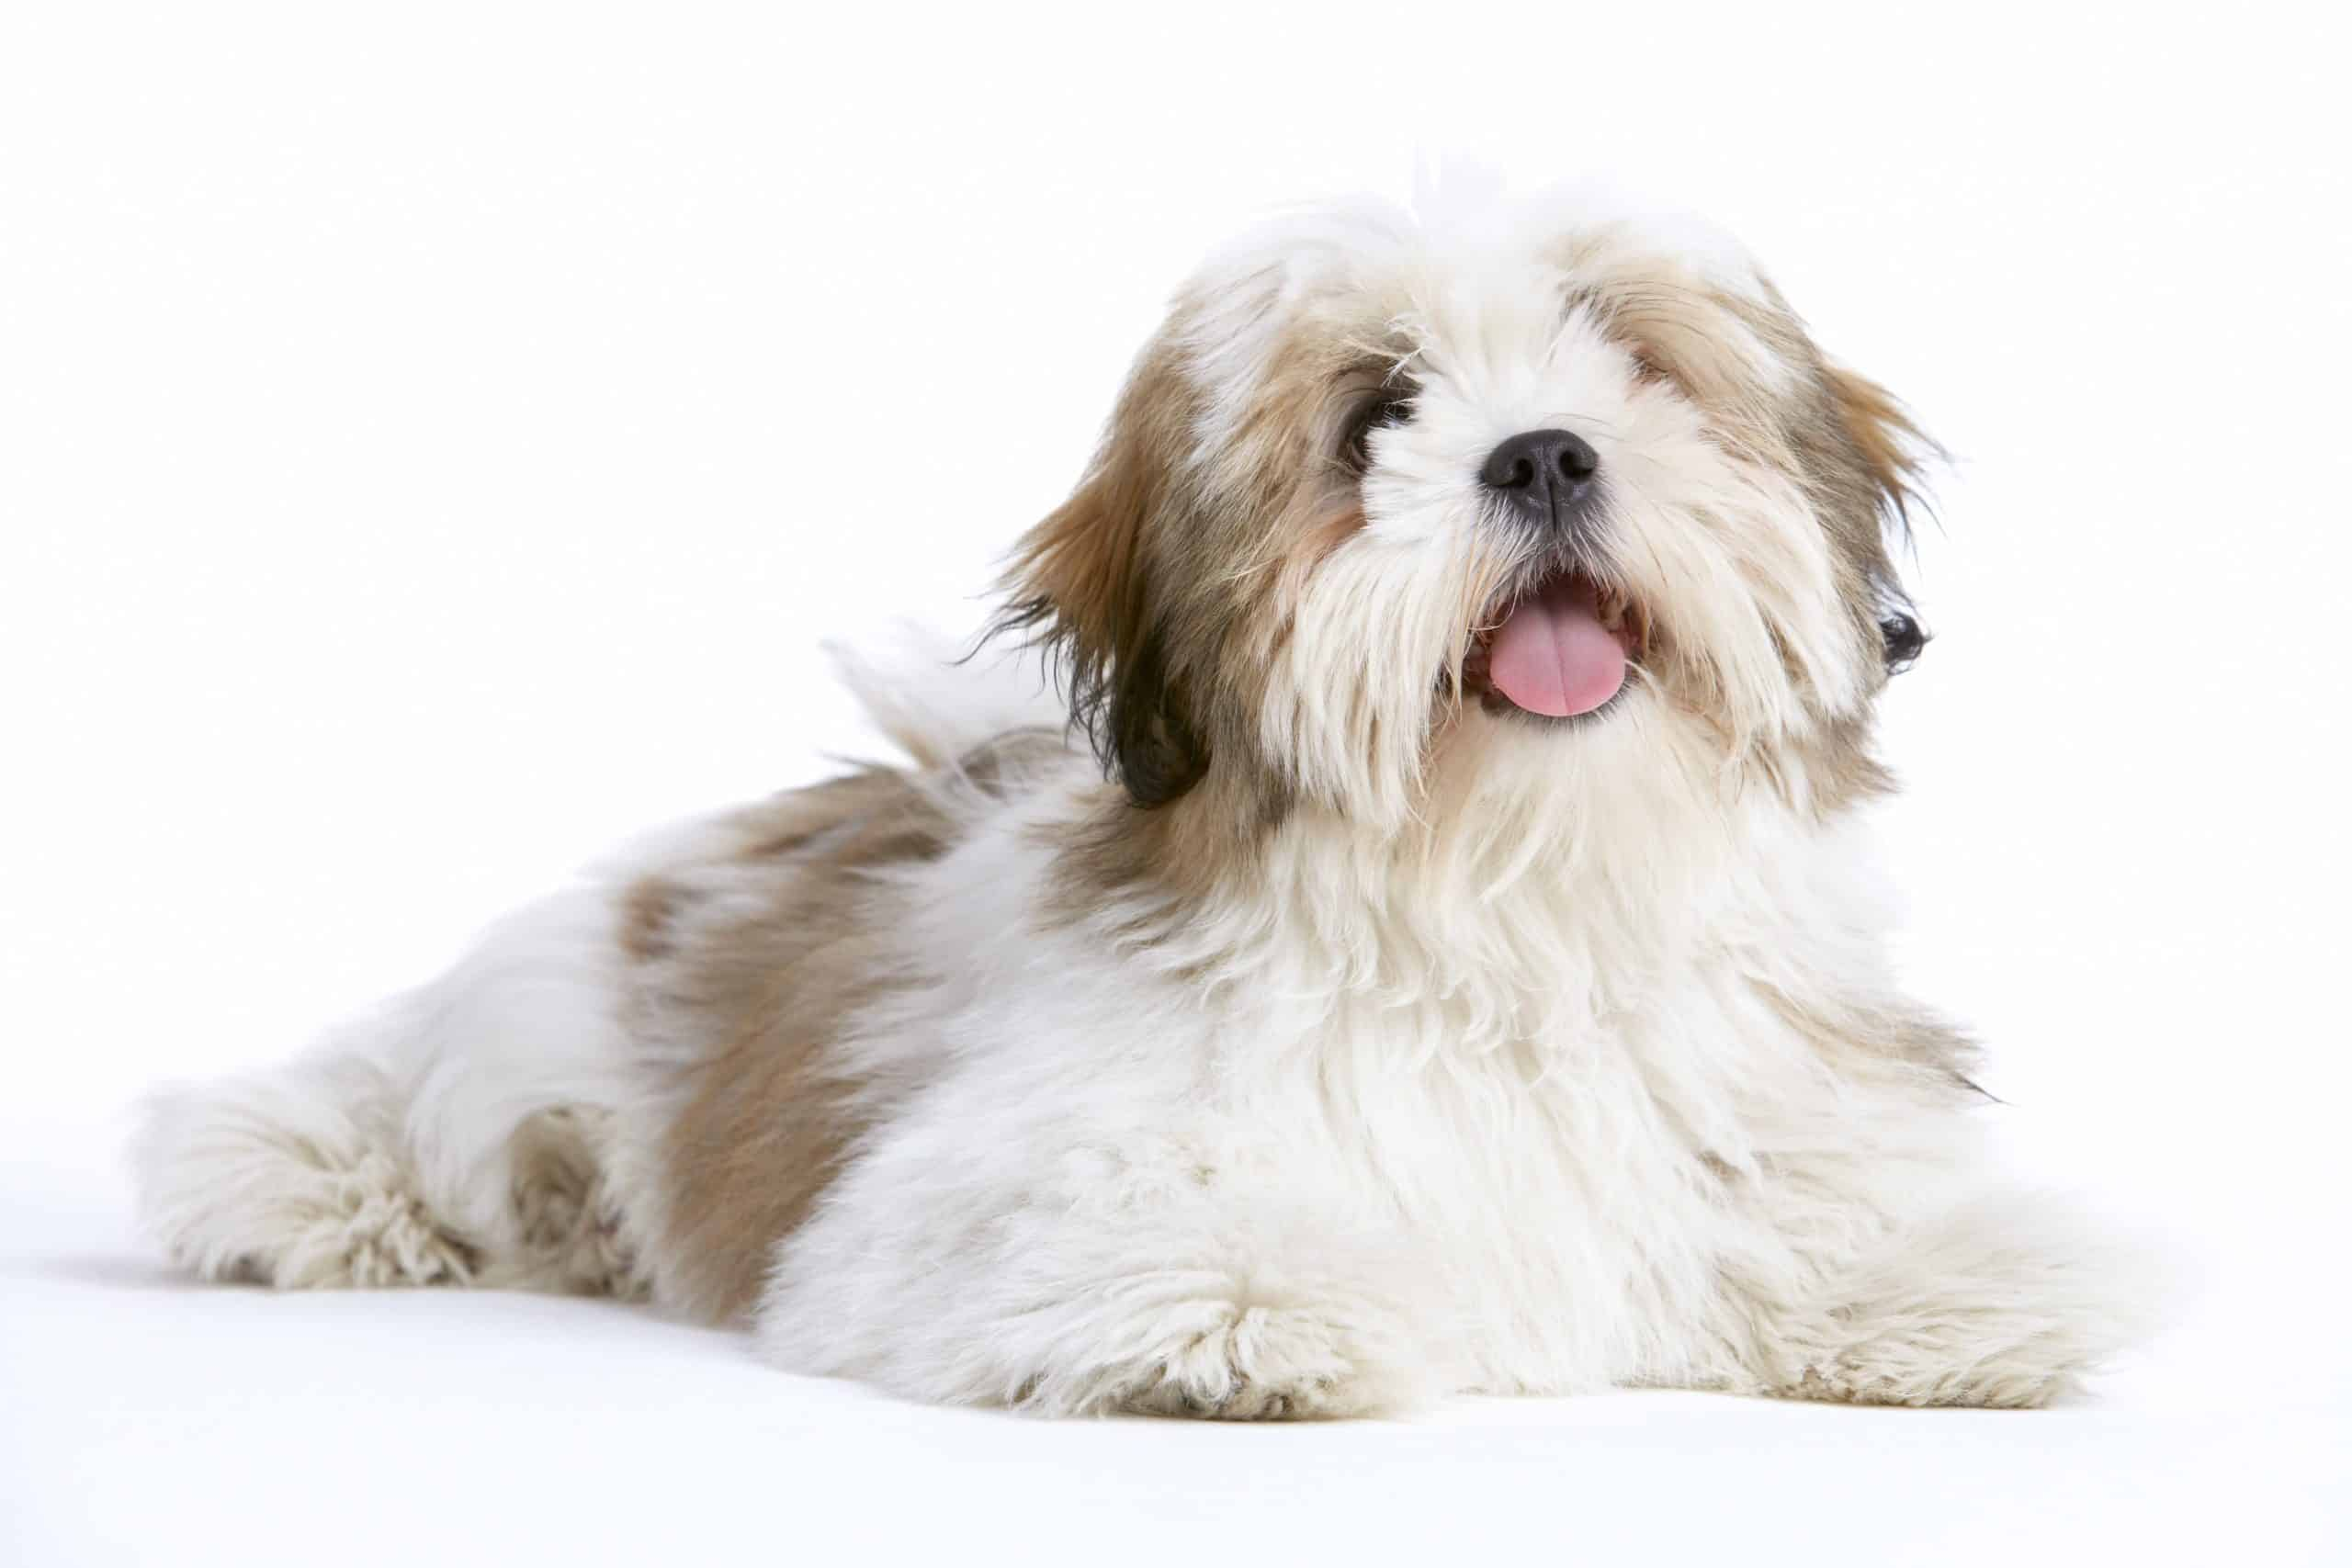 Lhasa Apso puppy on white background. The Lhasa Apso comes with beautiful black, tan, cream, red, and white-colored fur. But occasionally the dogs have grey, blue, or silver coats.